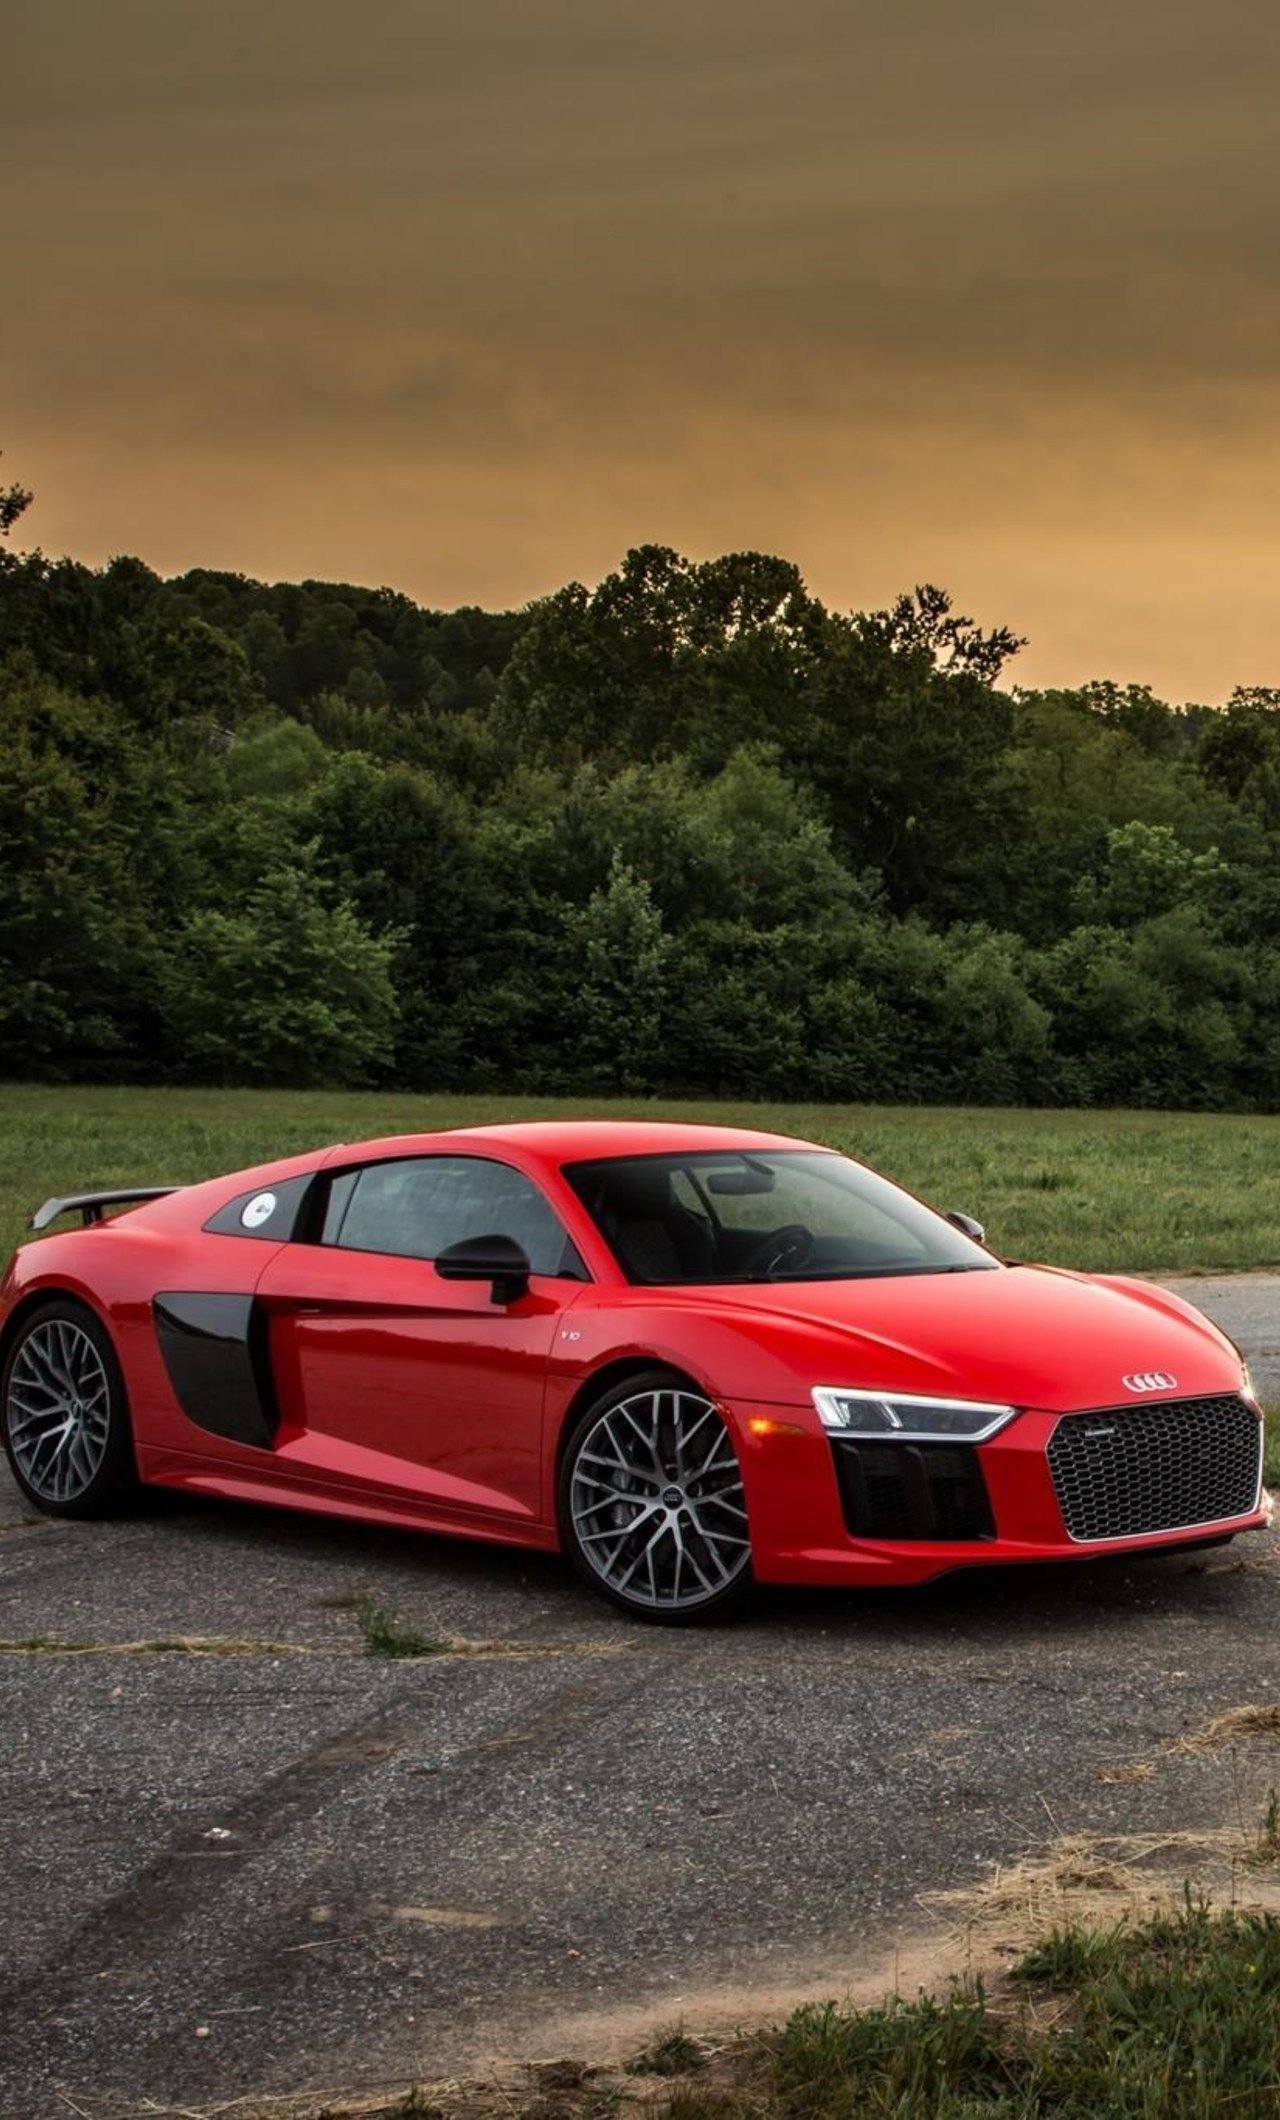 1280x2120 2017 Audi R8 V 10 Iphone 6 Hd 4k Wallpapers Images Wallpaper 1600x900 In 2020 Audi R8 Wallpaper Audi Audi R8